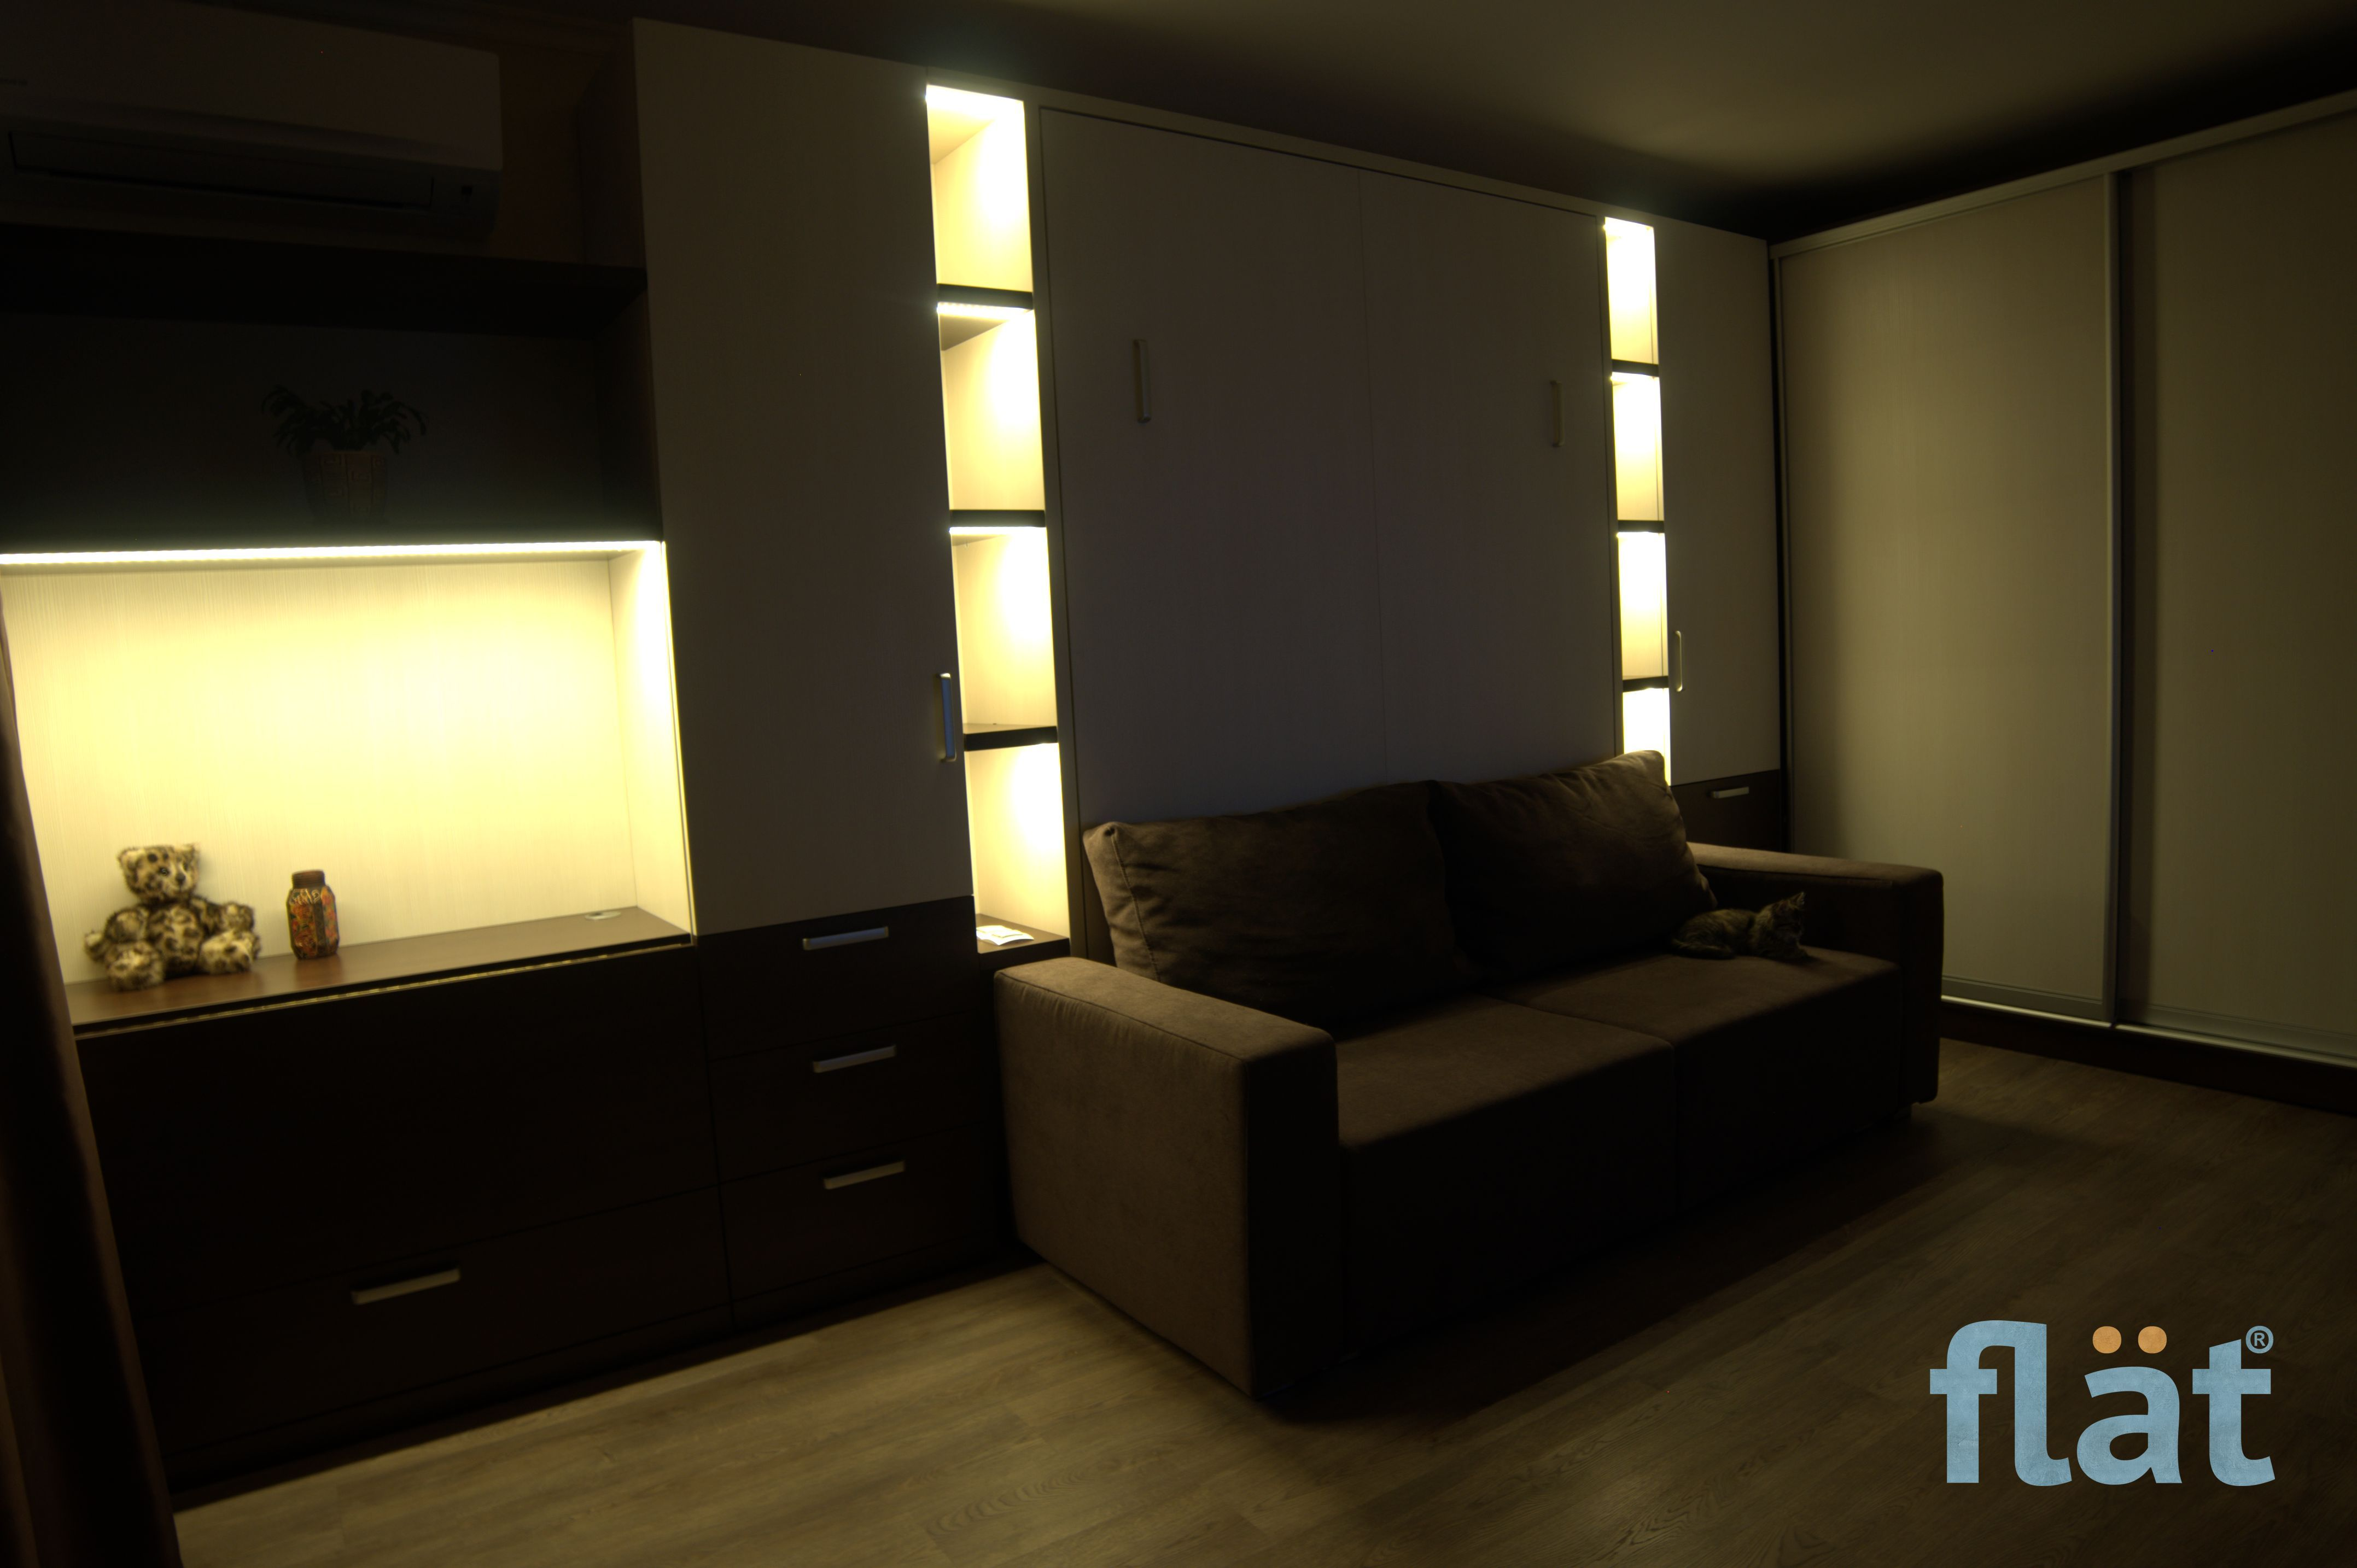 Queen size wall bed with LED Light. Шкаф кровать. Проект